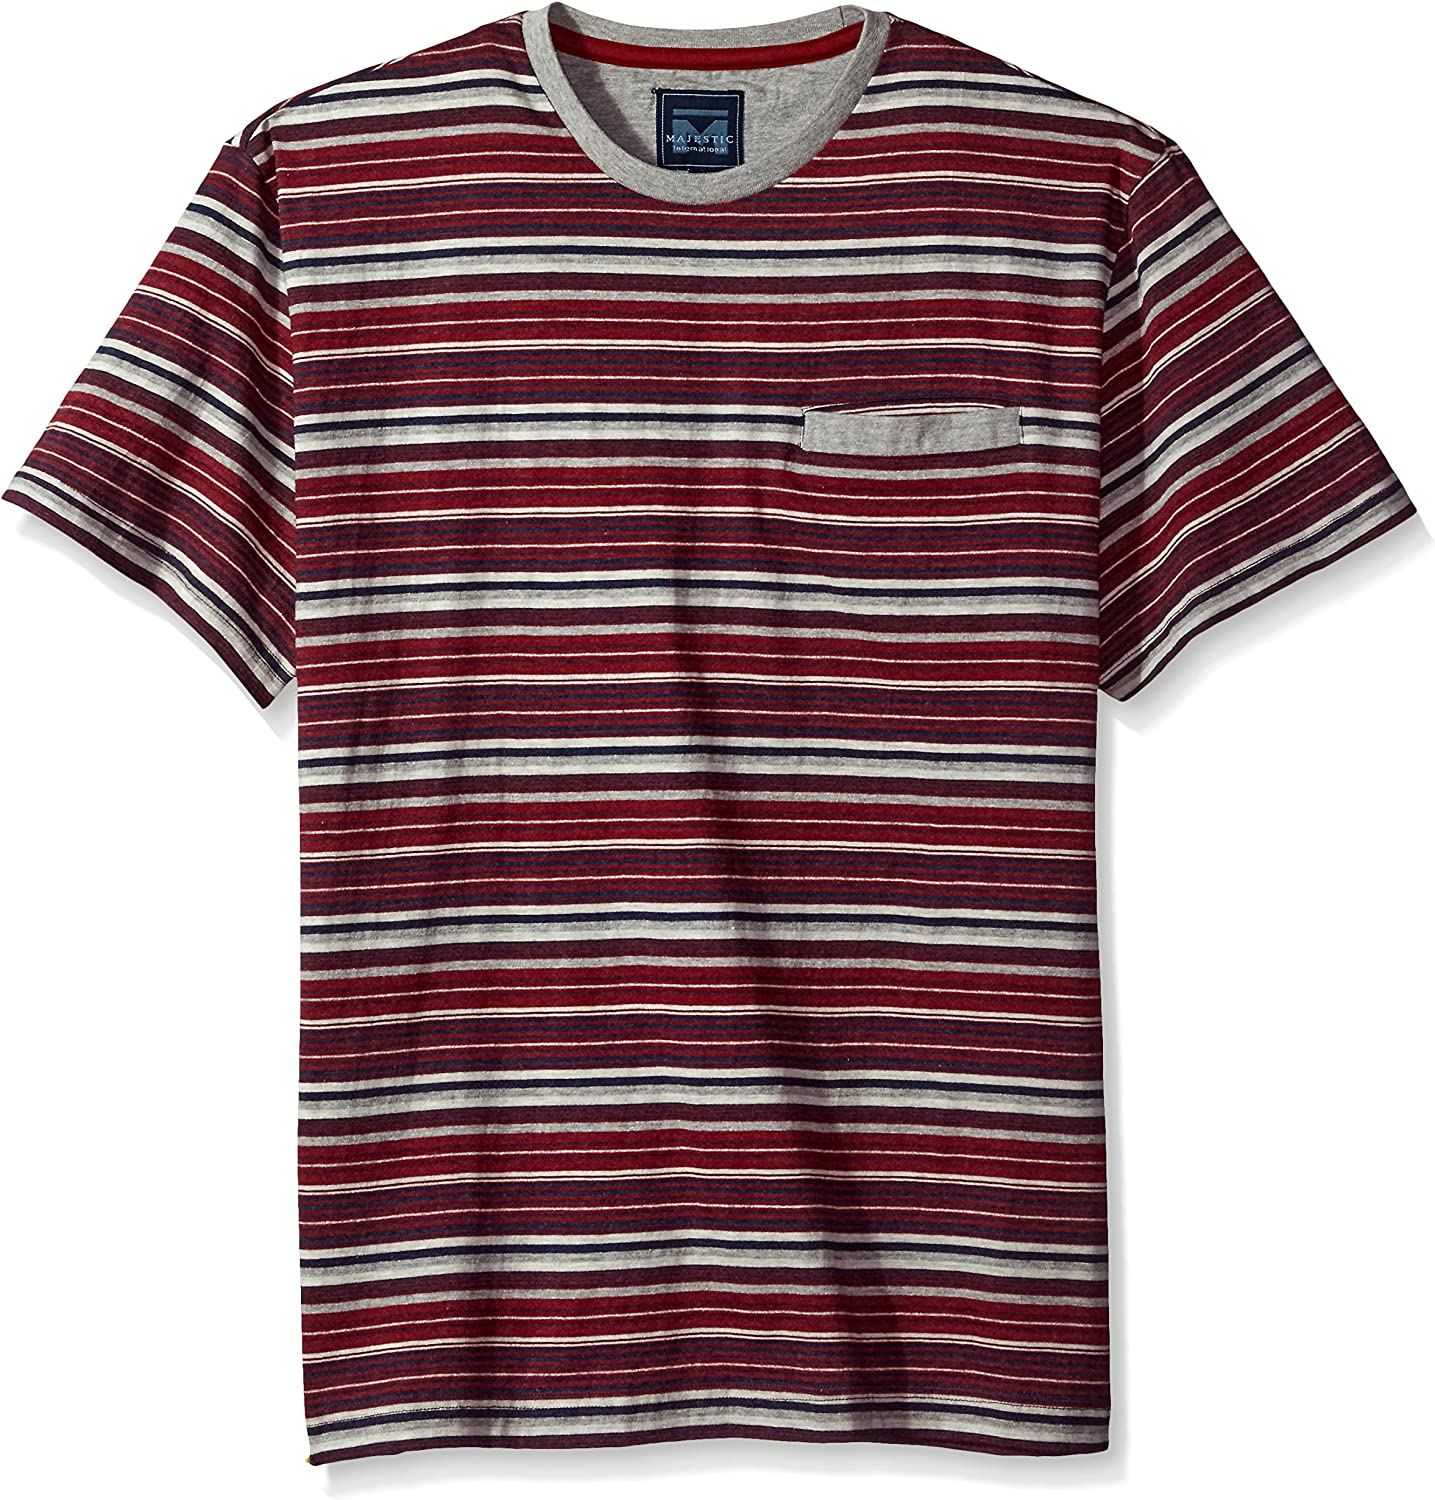 Majestic International Men's Big Daddy Jersey Knit Stripe Short Sleeve Crewneck Top